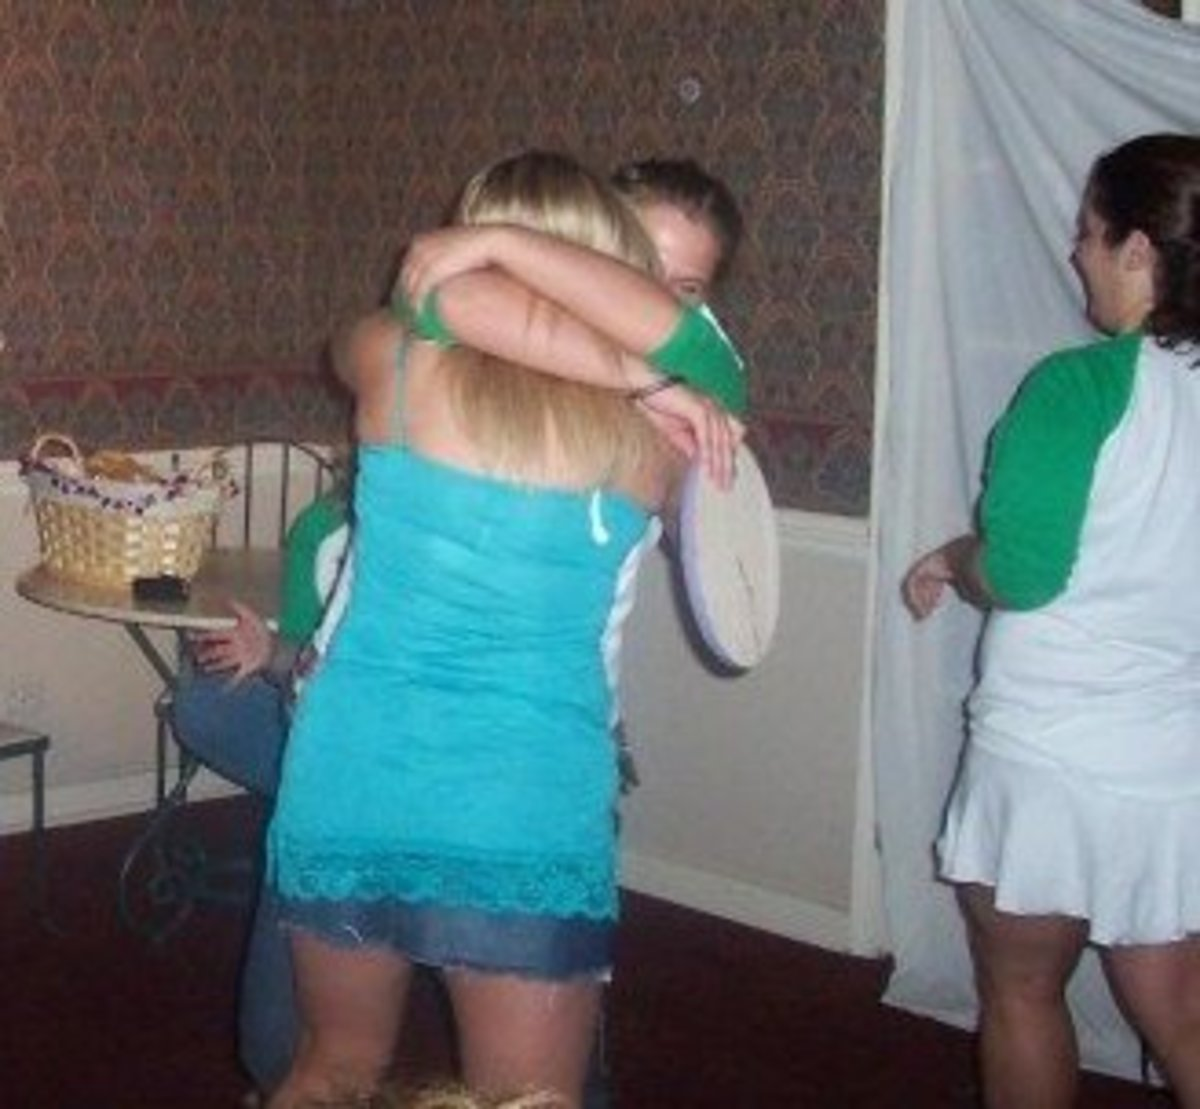 Two sorority sisters hugging